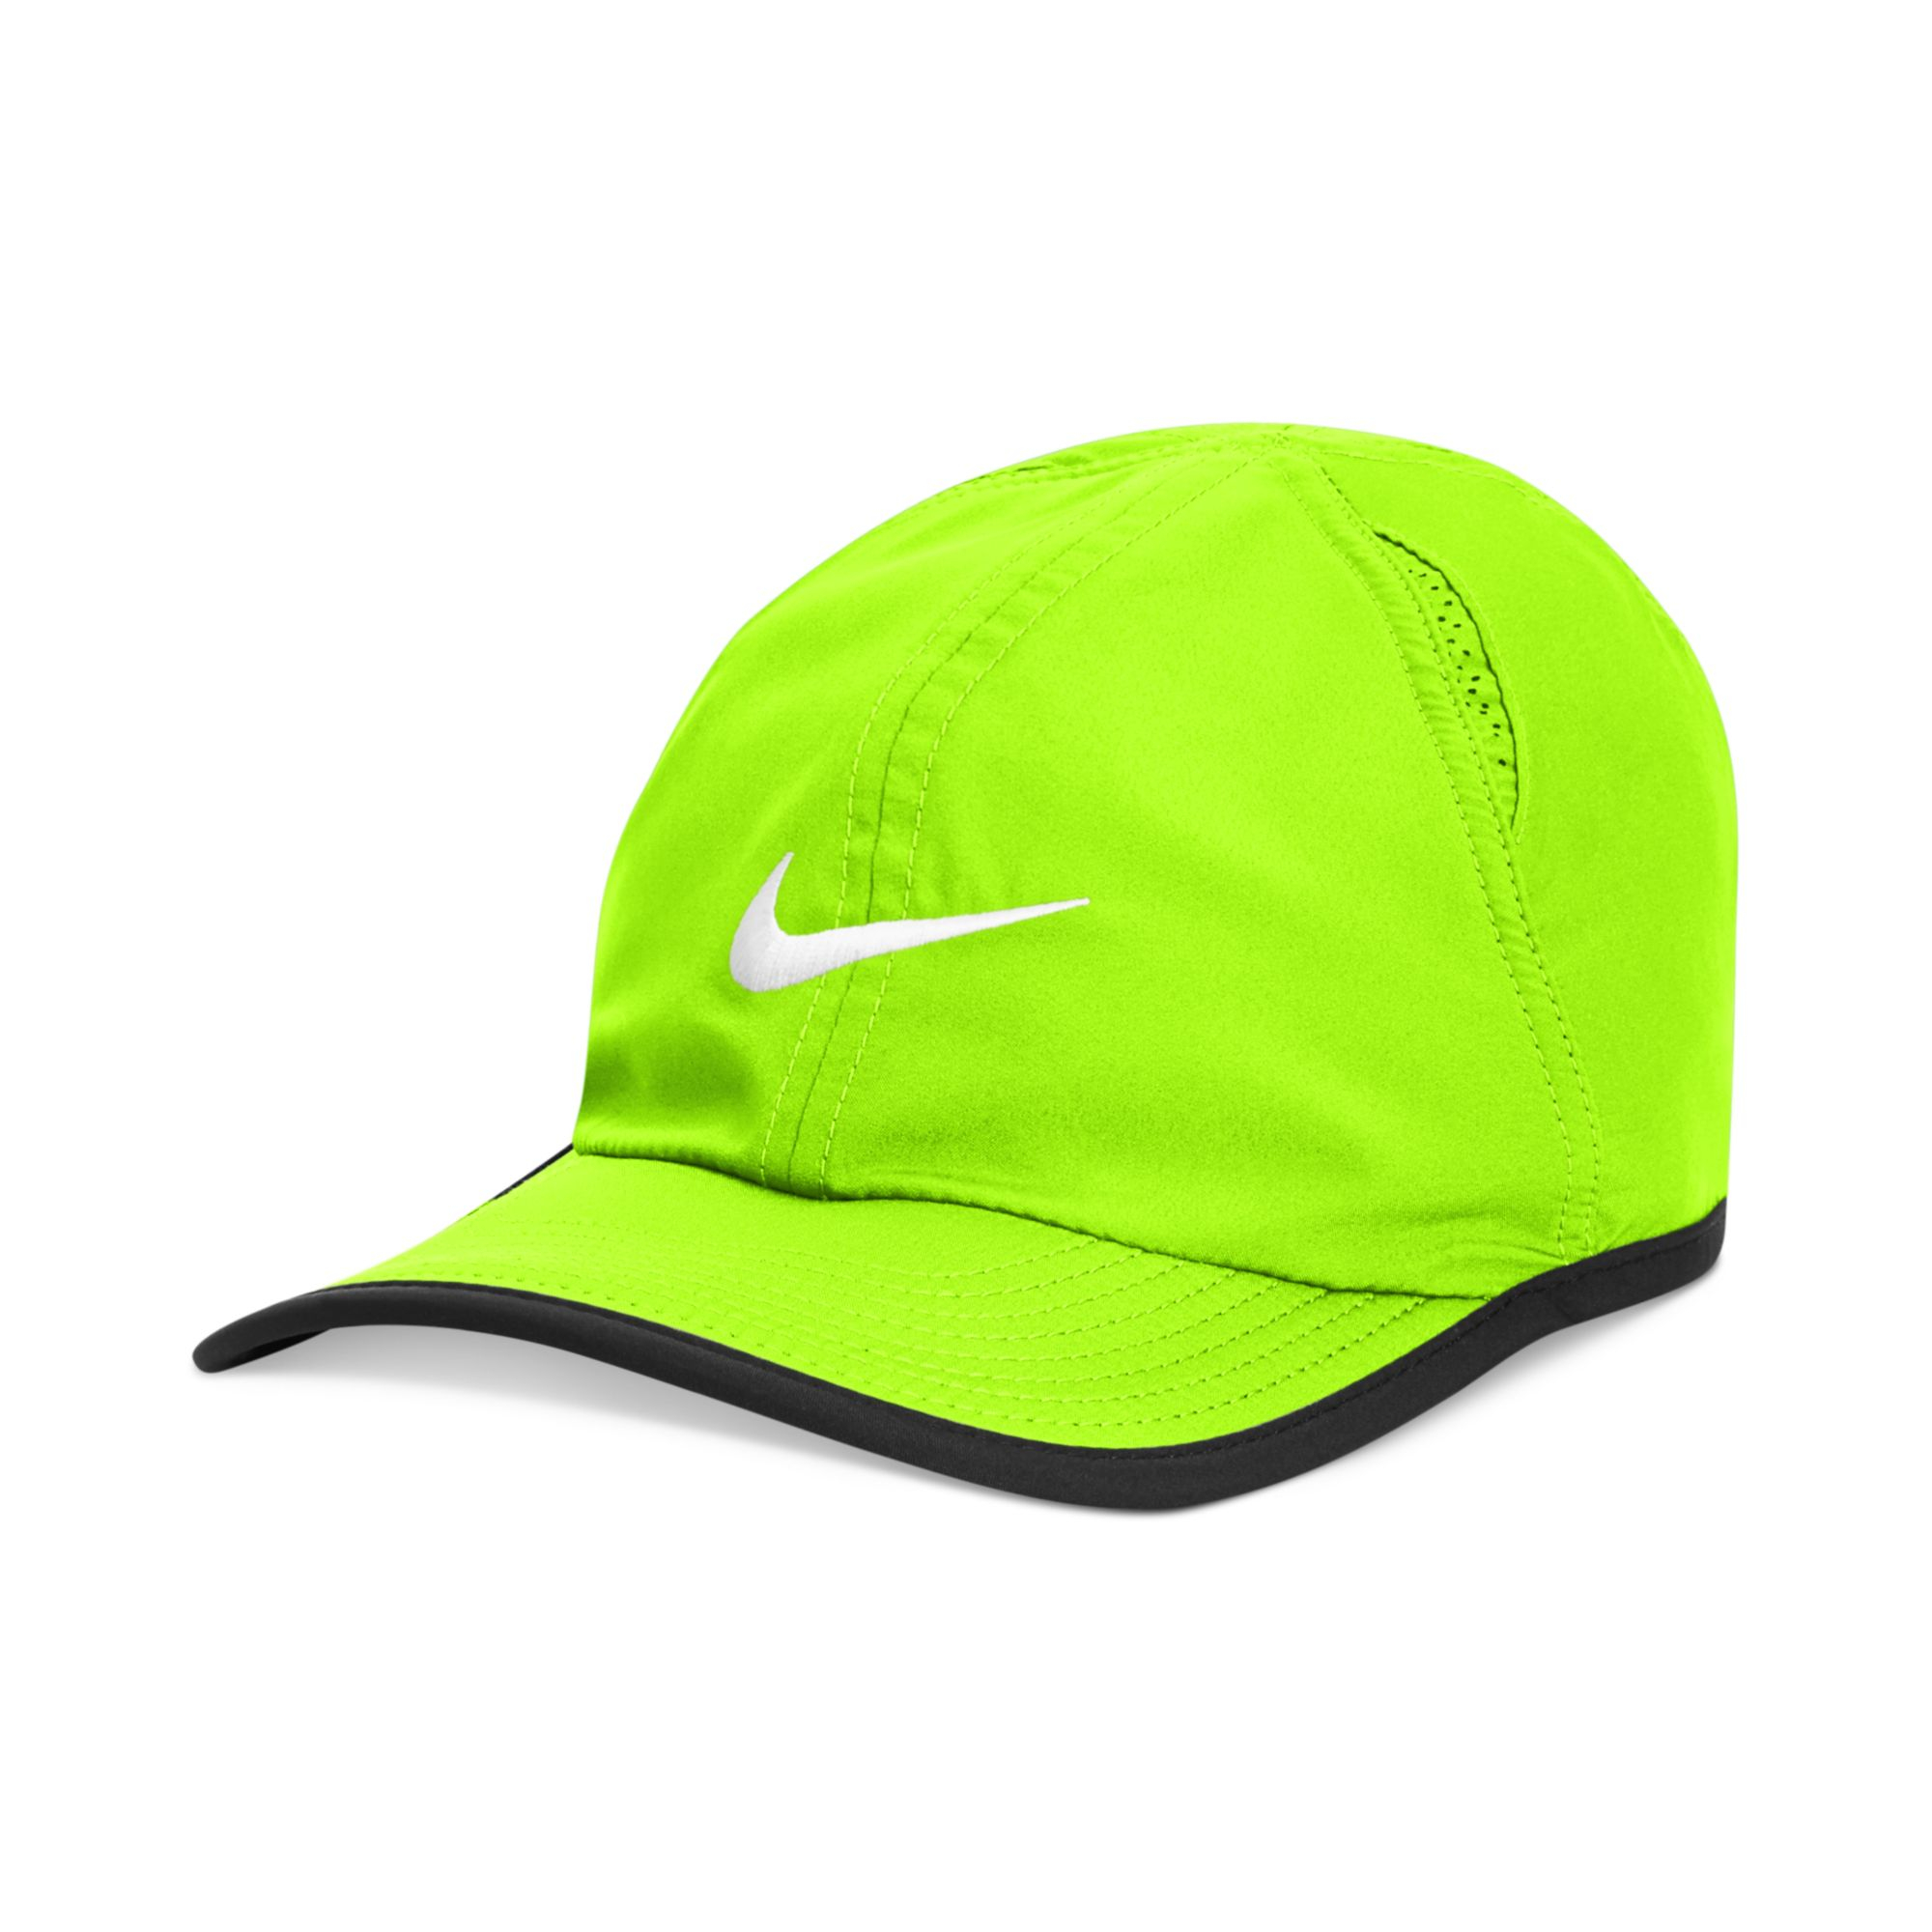 ... free shipping lyst nike drifit featherlight performance hat 20 in green  for men fba27 fca15 d0ae0b00ed36